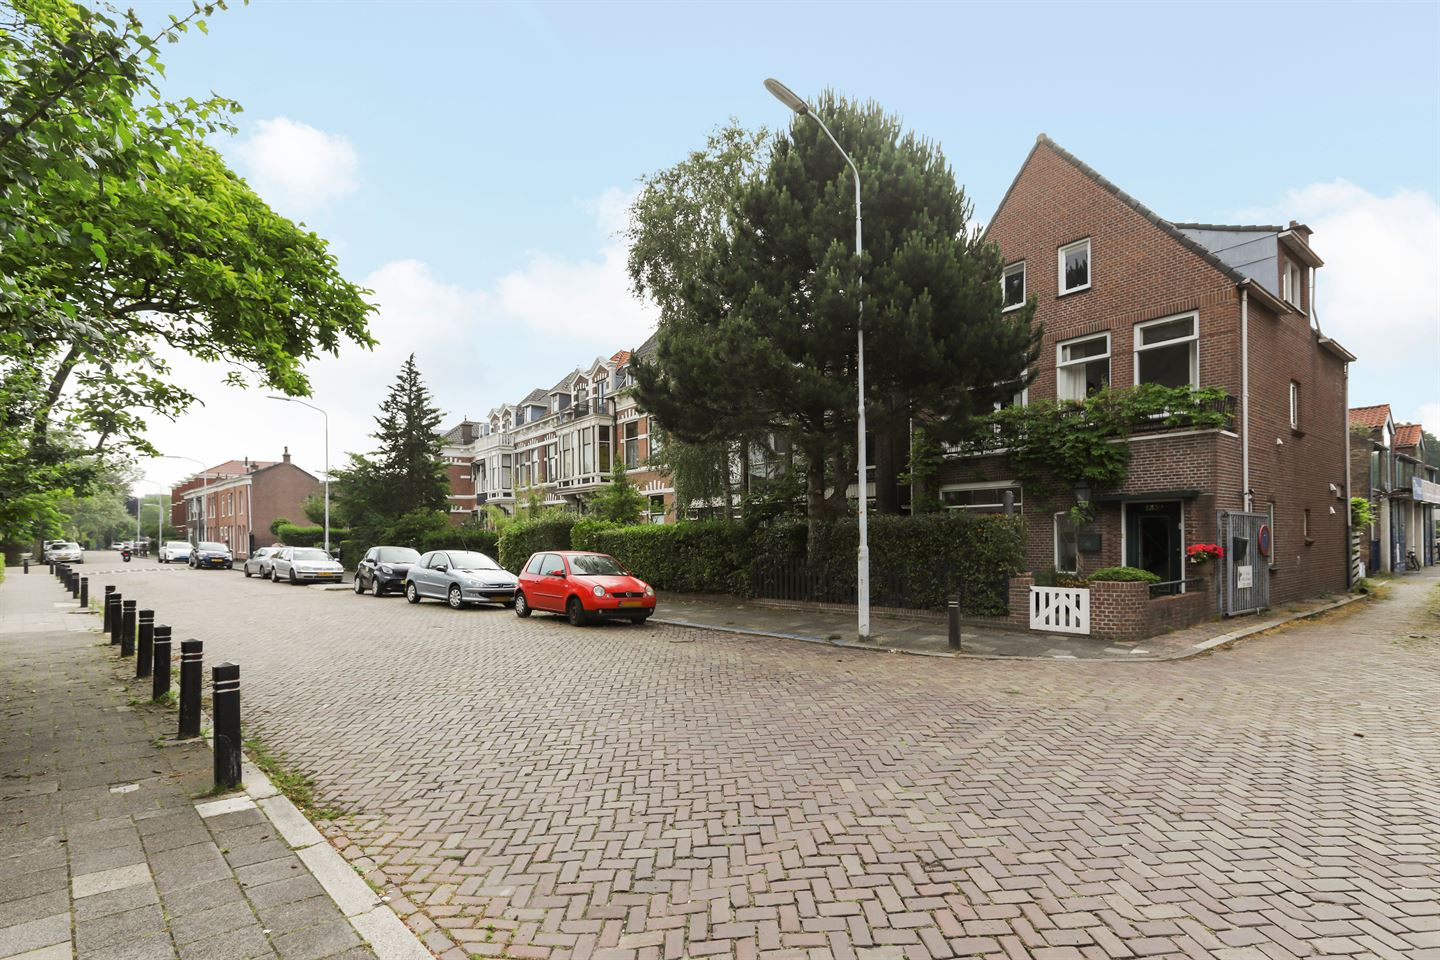 View photo 3 of Westeinde 132 A